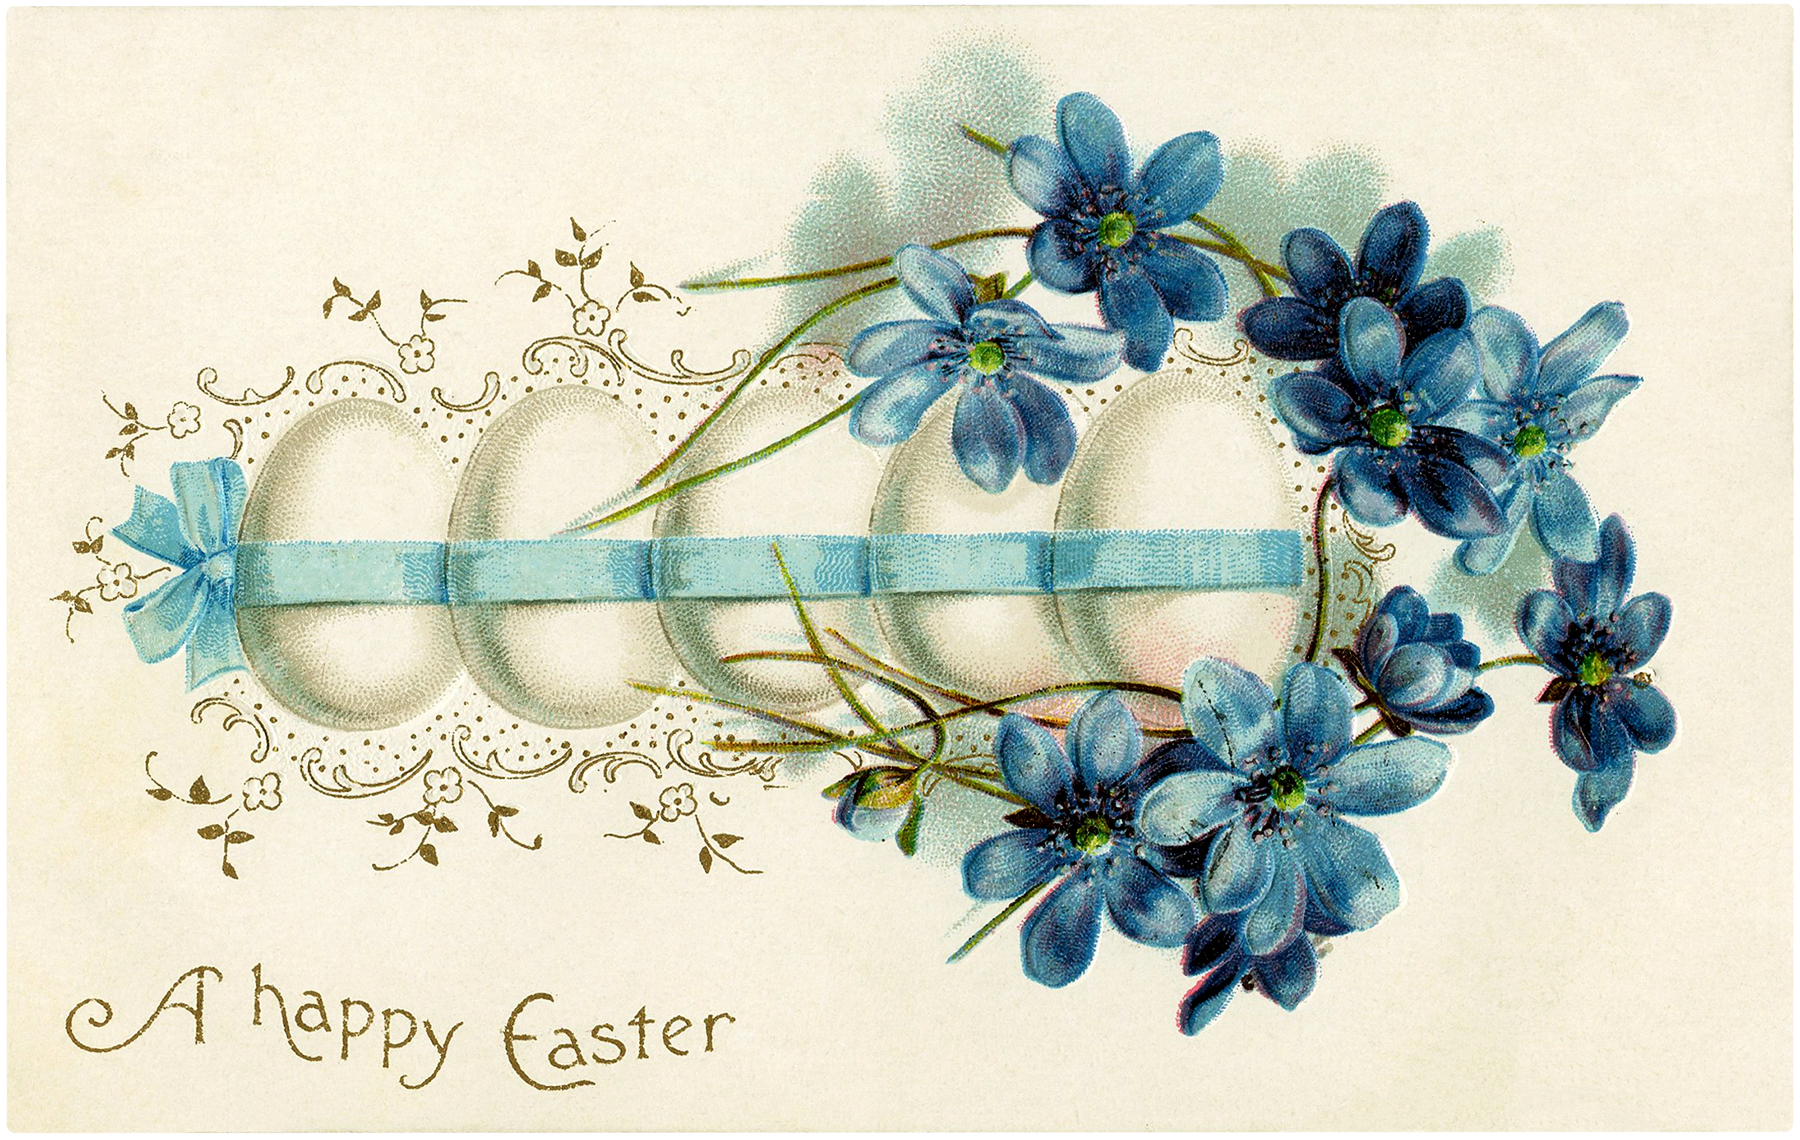 Vintage Pretty Easter Eggs Image